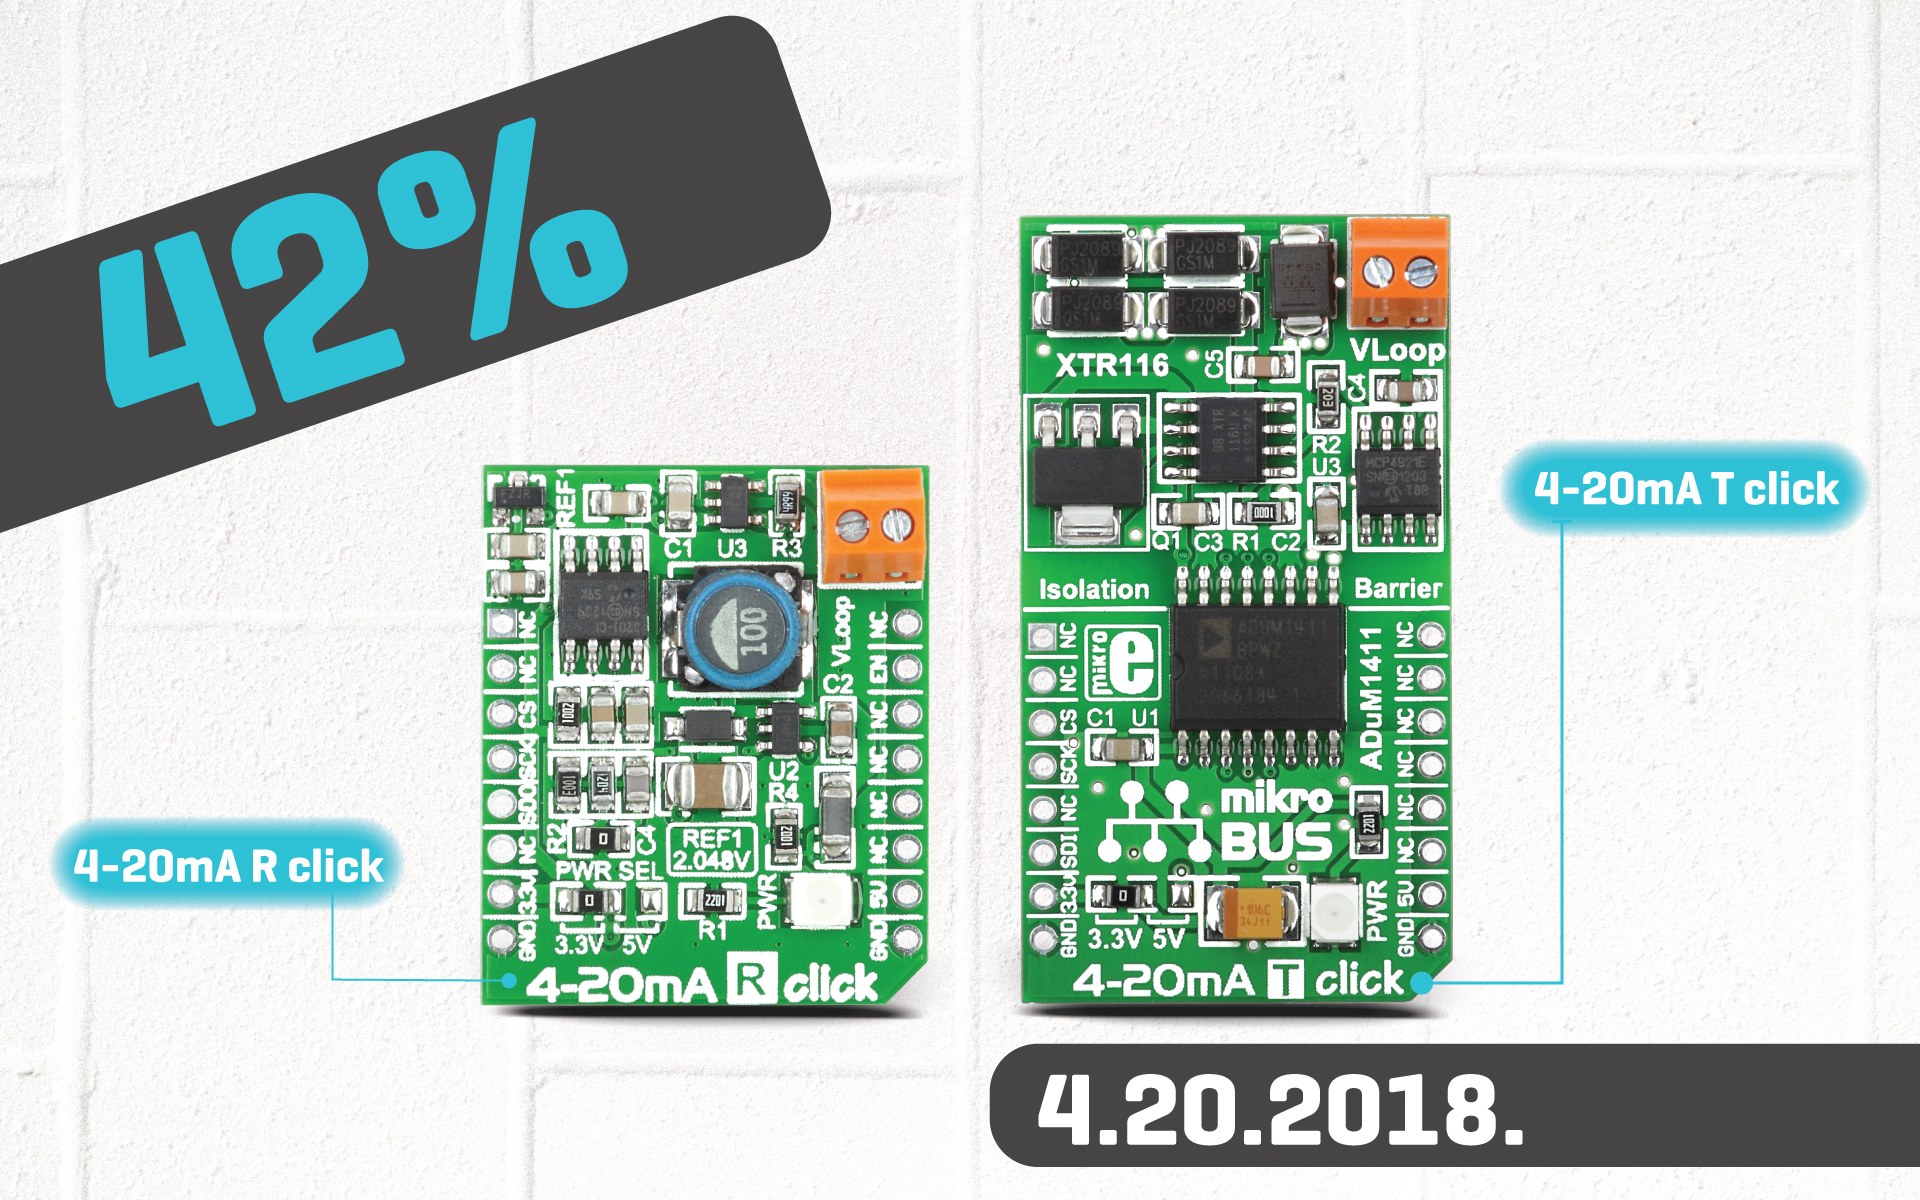 42% discount on 4-20 mA T click and 4-20 mA R click